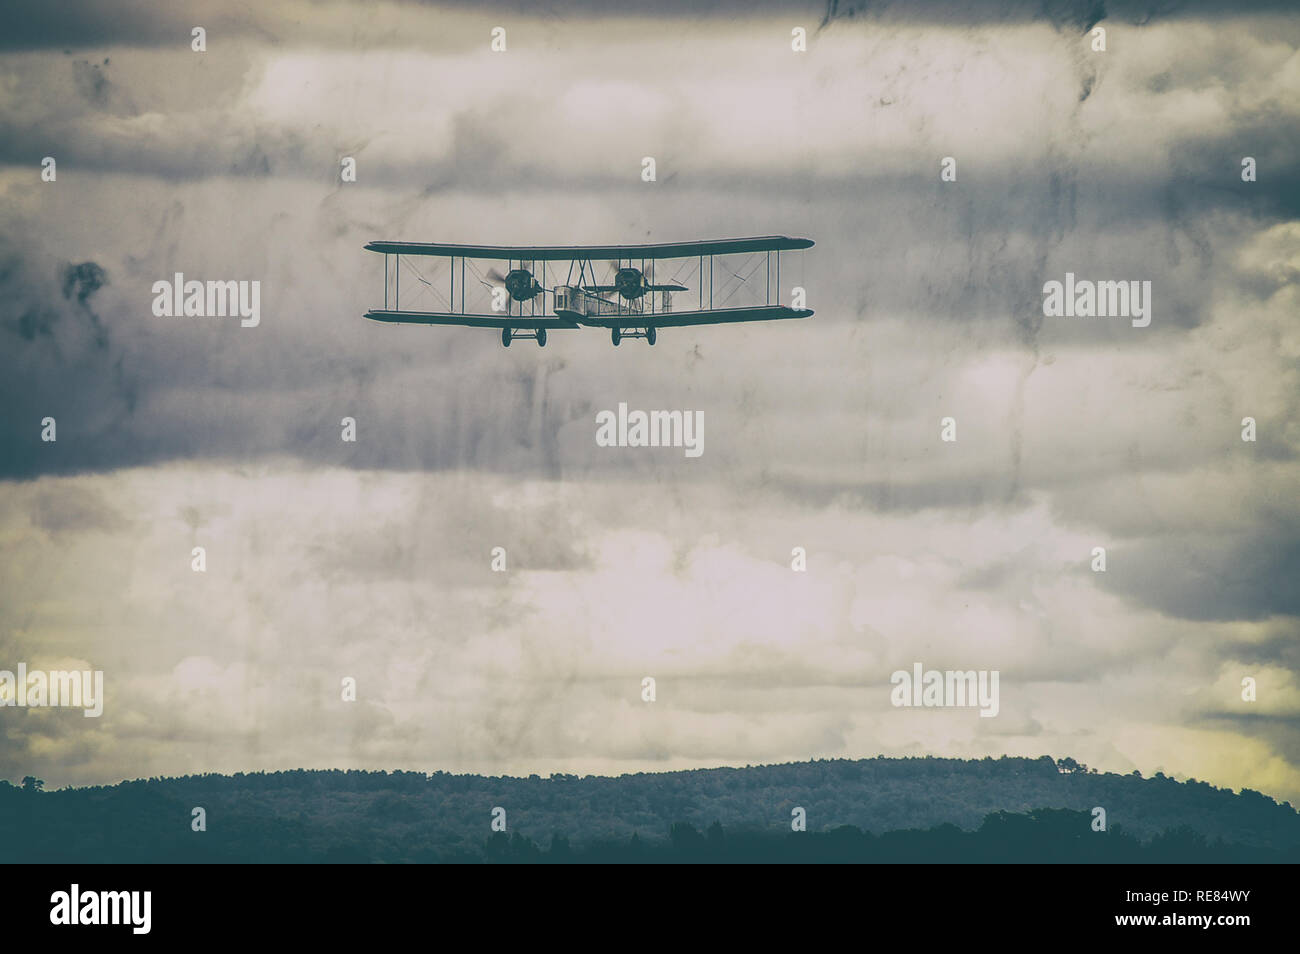 vickers-vimy-british-heavy-bomber-aircraft-plane-biplane-of-first-world-war-recreated-alcock-brown-atlantic-flight-modern-image-aged-to-appear-old-RE84WY.jpg